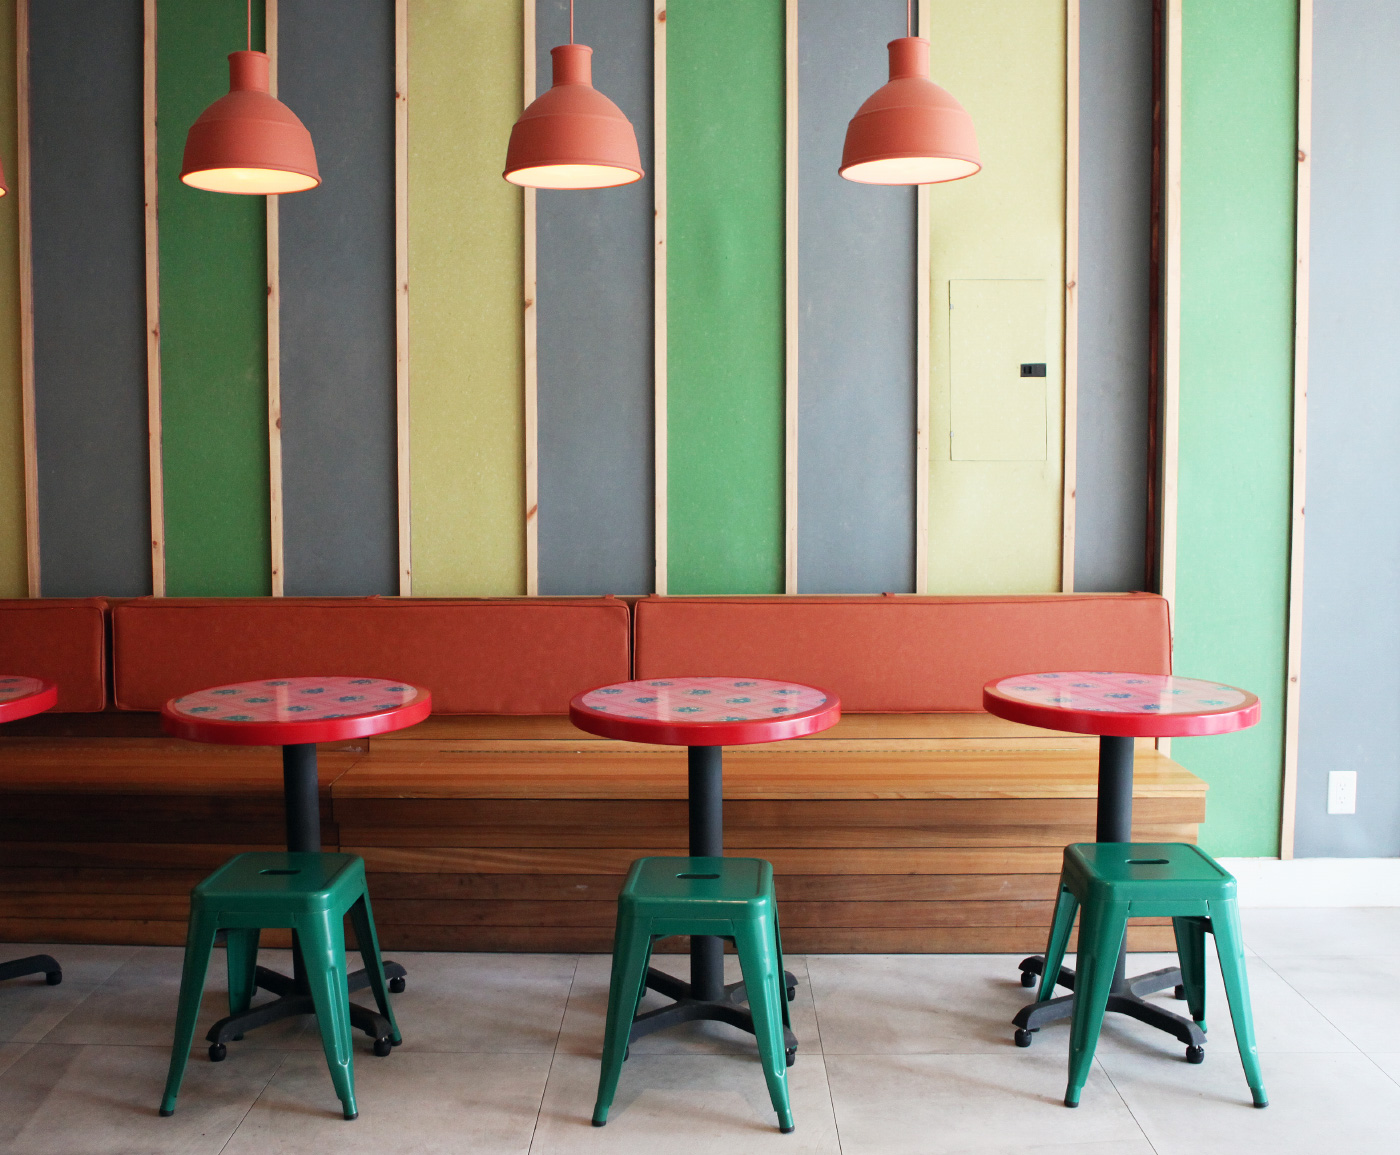 Interior of a restaurant with linear vertical stripes